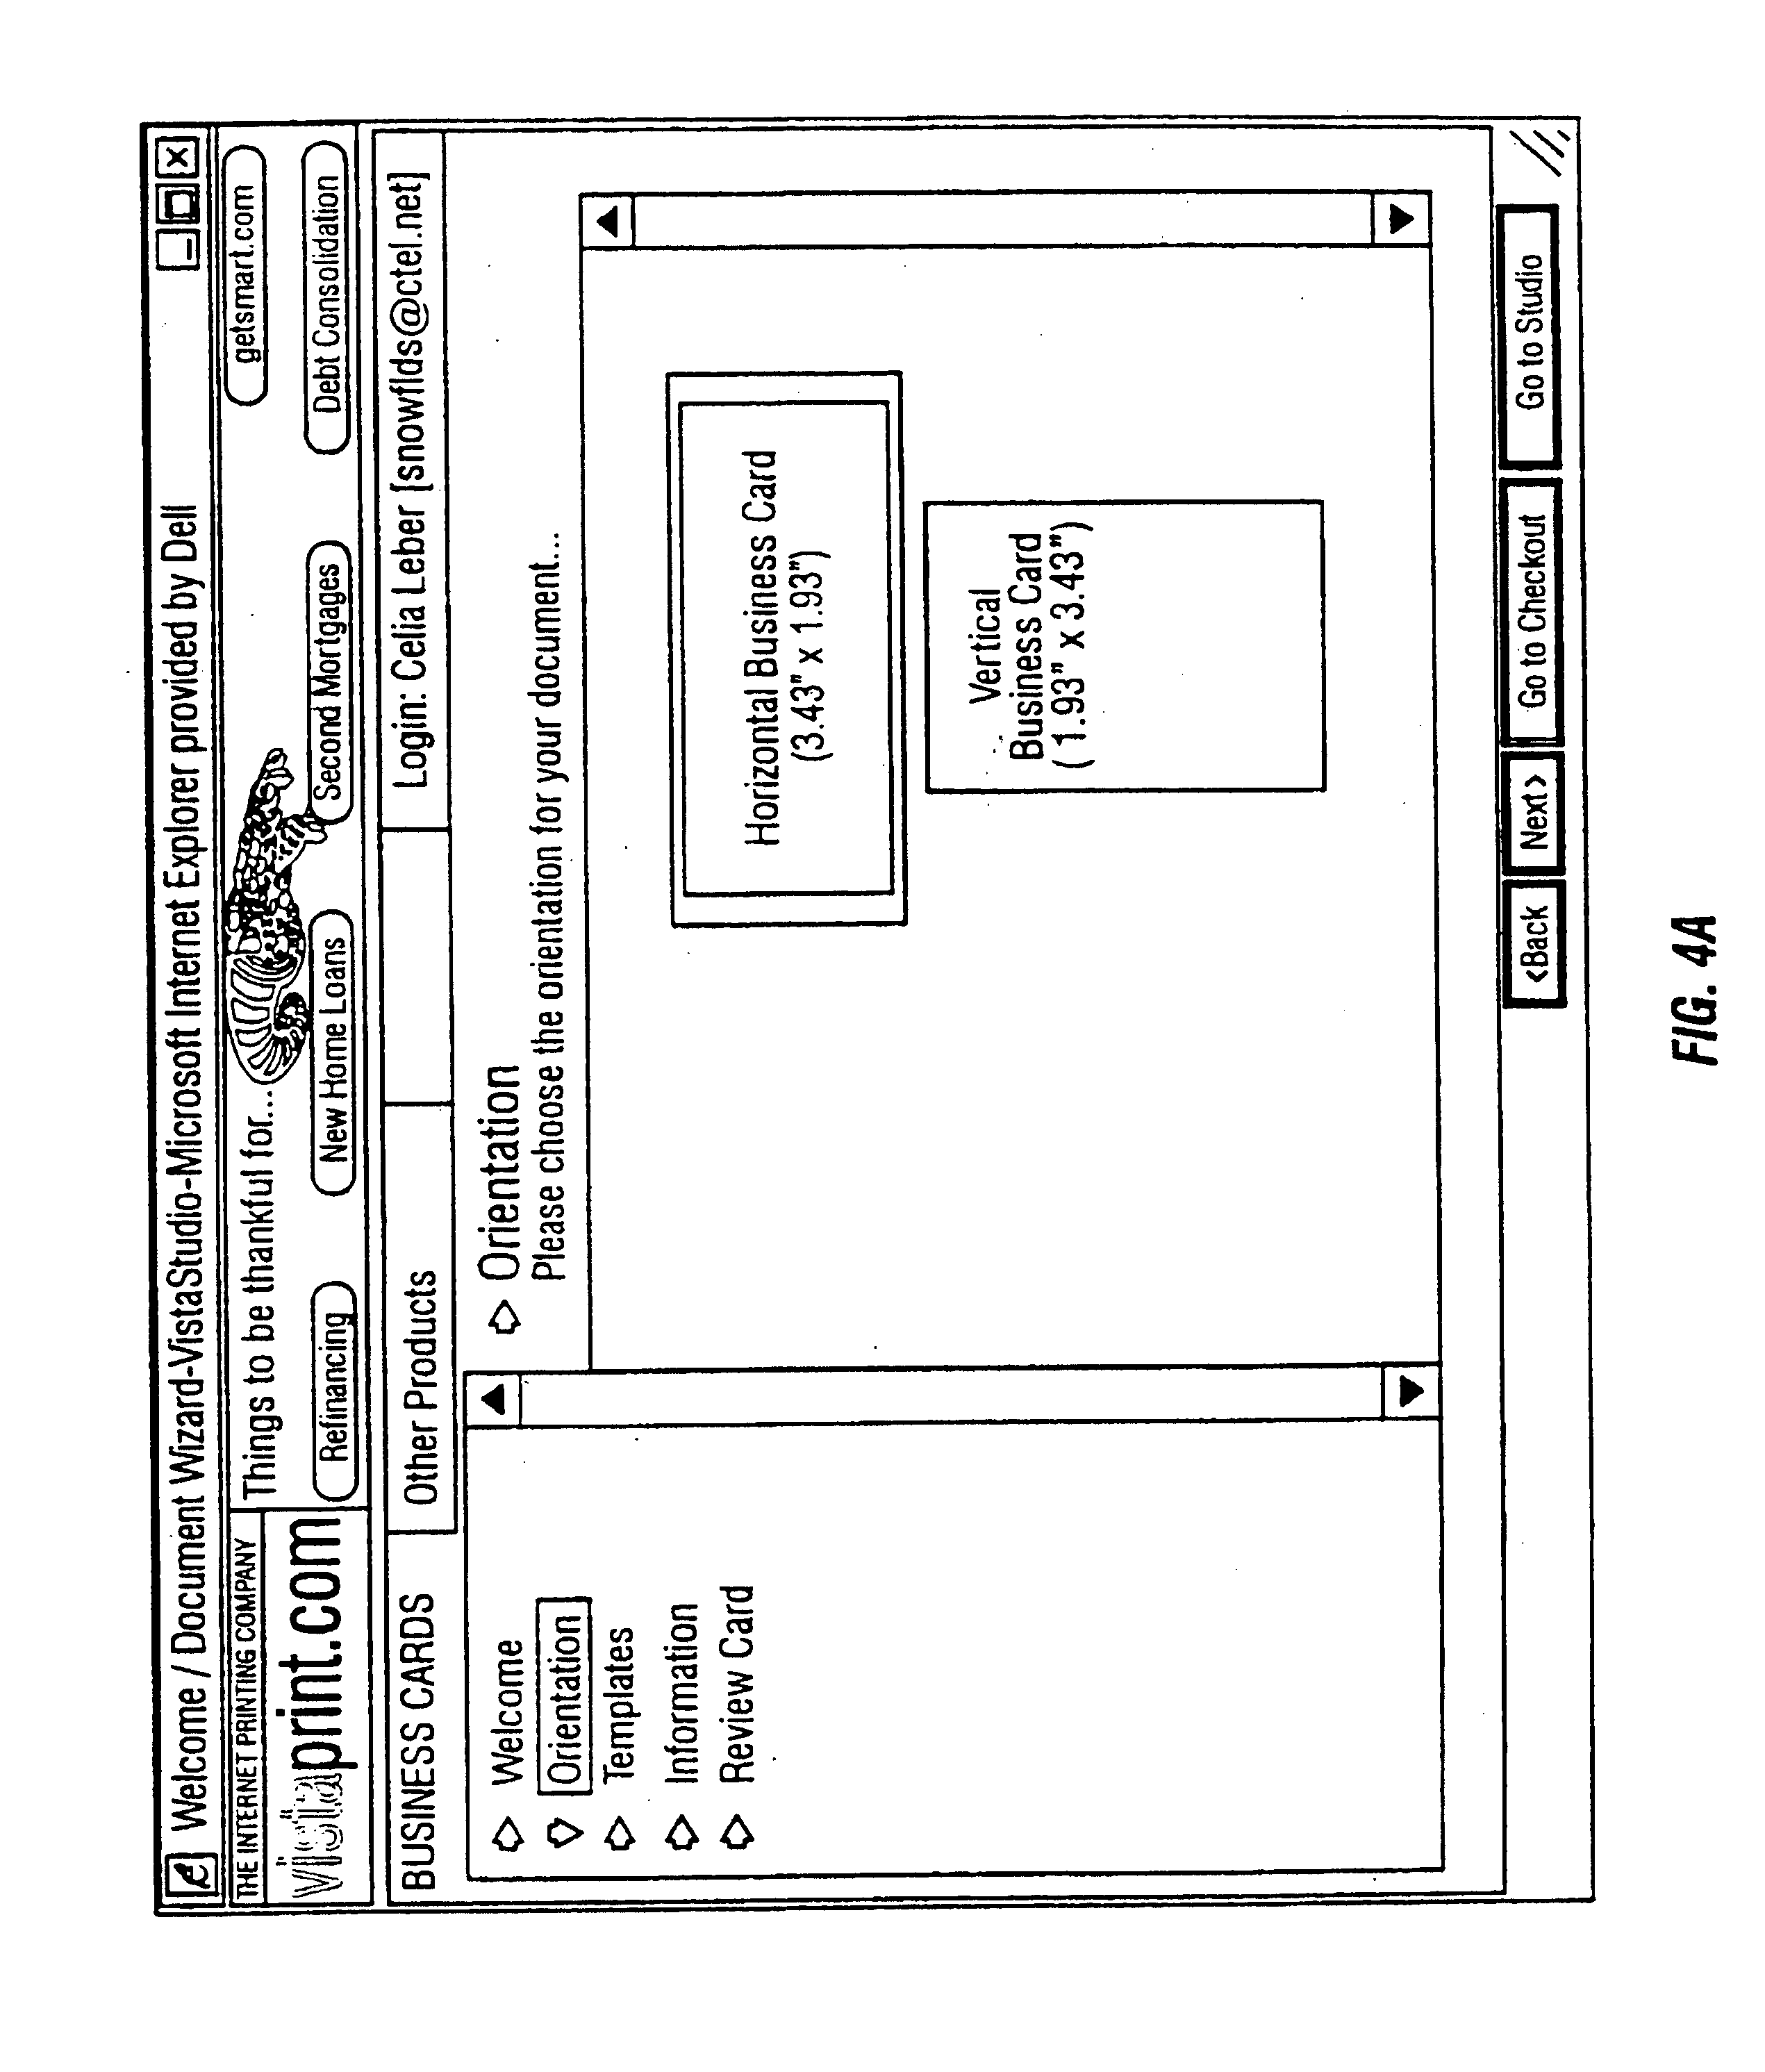 Patent US Method for processing aggregate print jobs